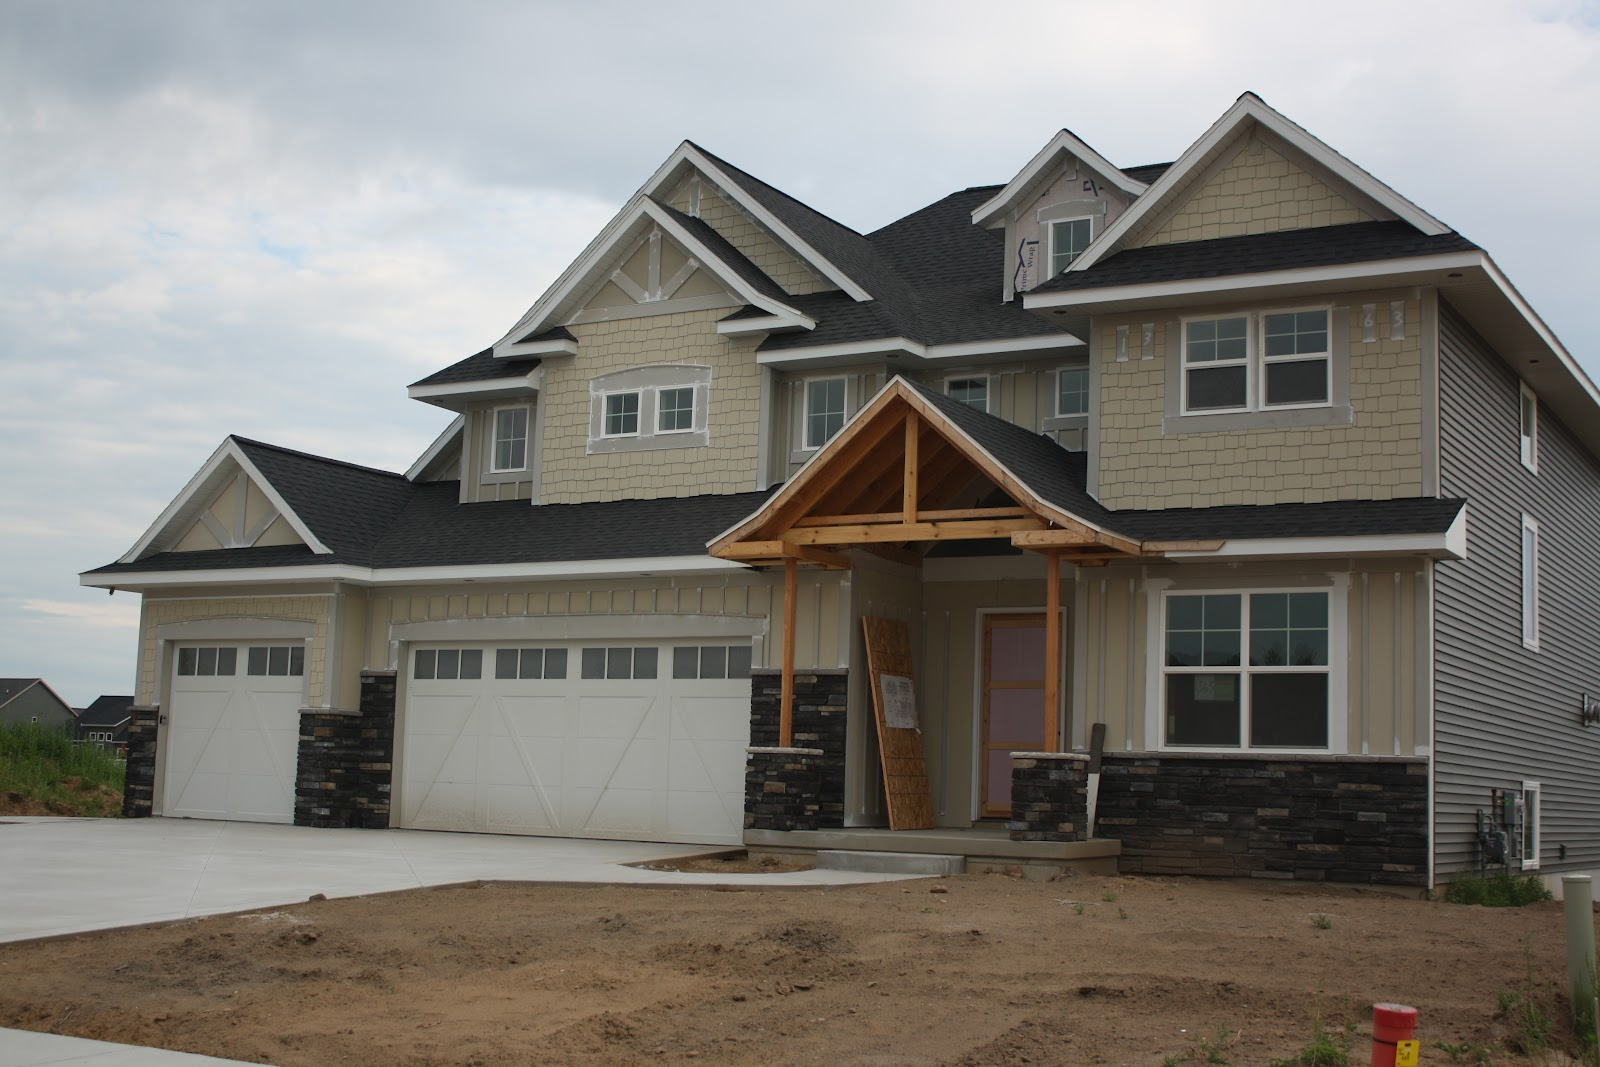 House On Tufton: The Build: Exterior Stone, Siding, And